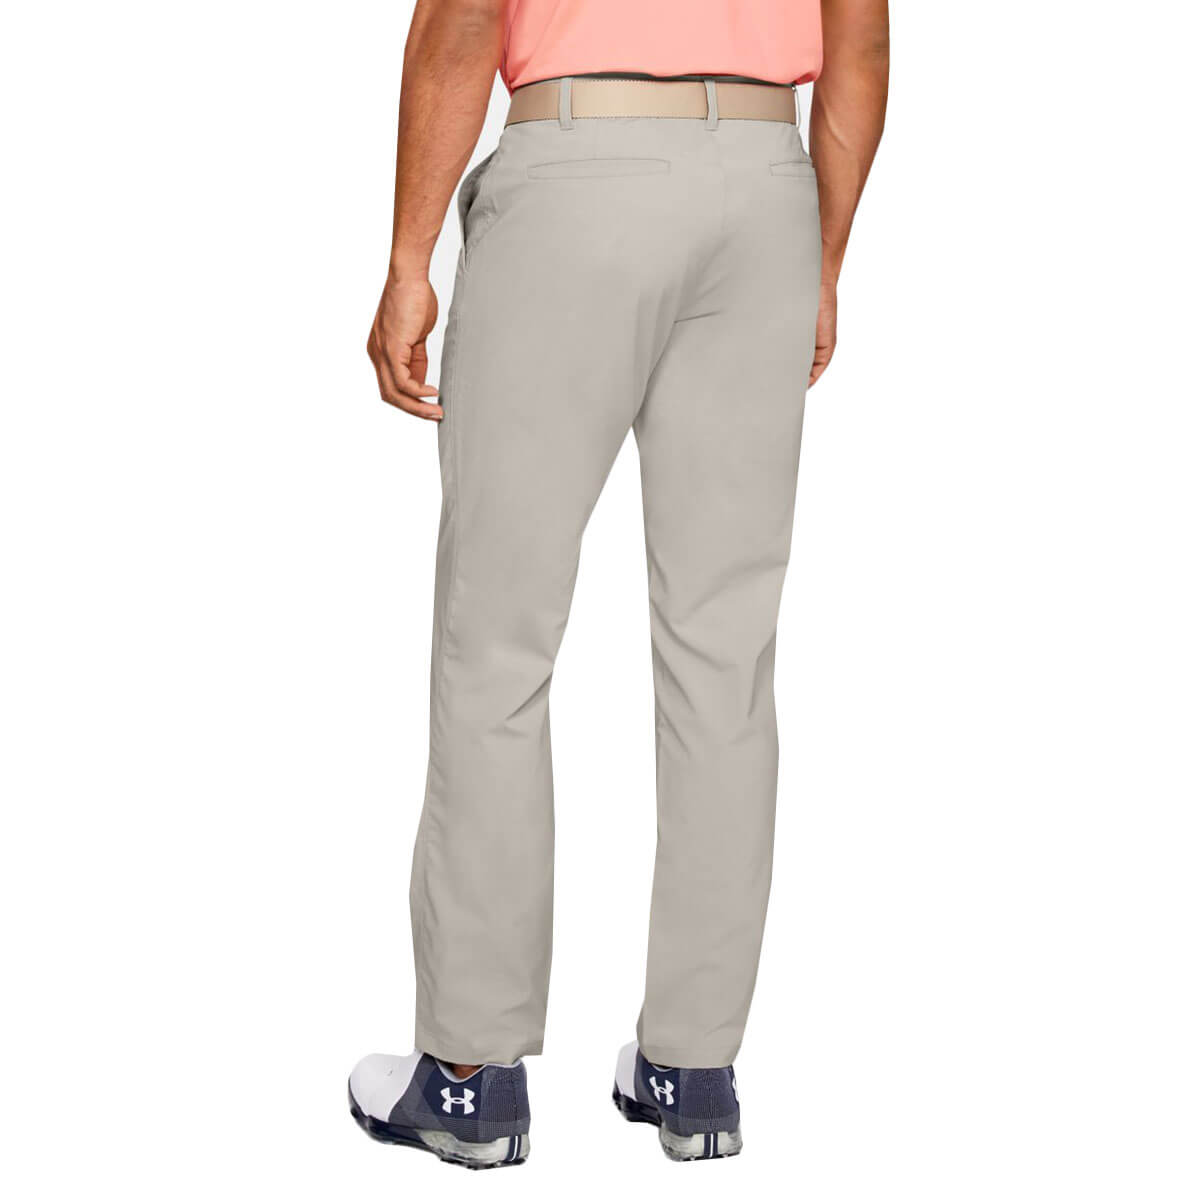 Under-Armour-Mens-2019-EU-Tech-Stretch-Straight-Golf-Trousers-30-OFF-RRP thumbnail 11